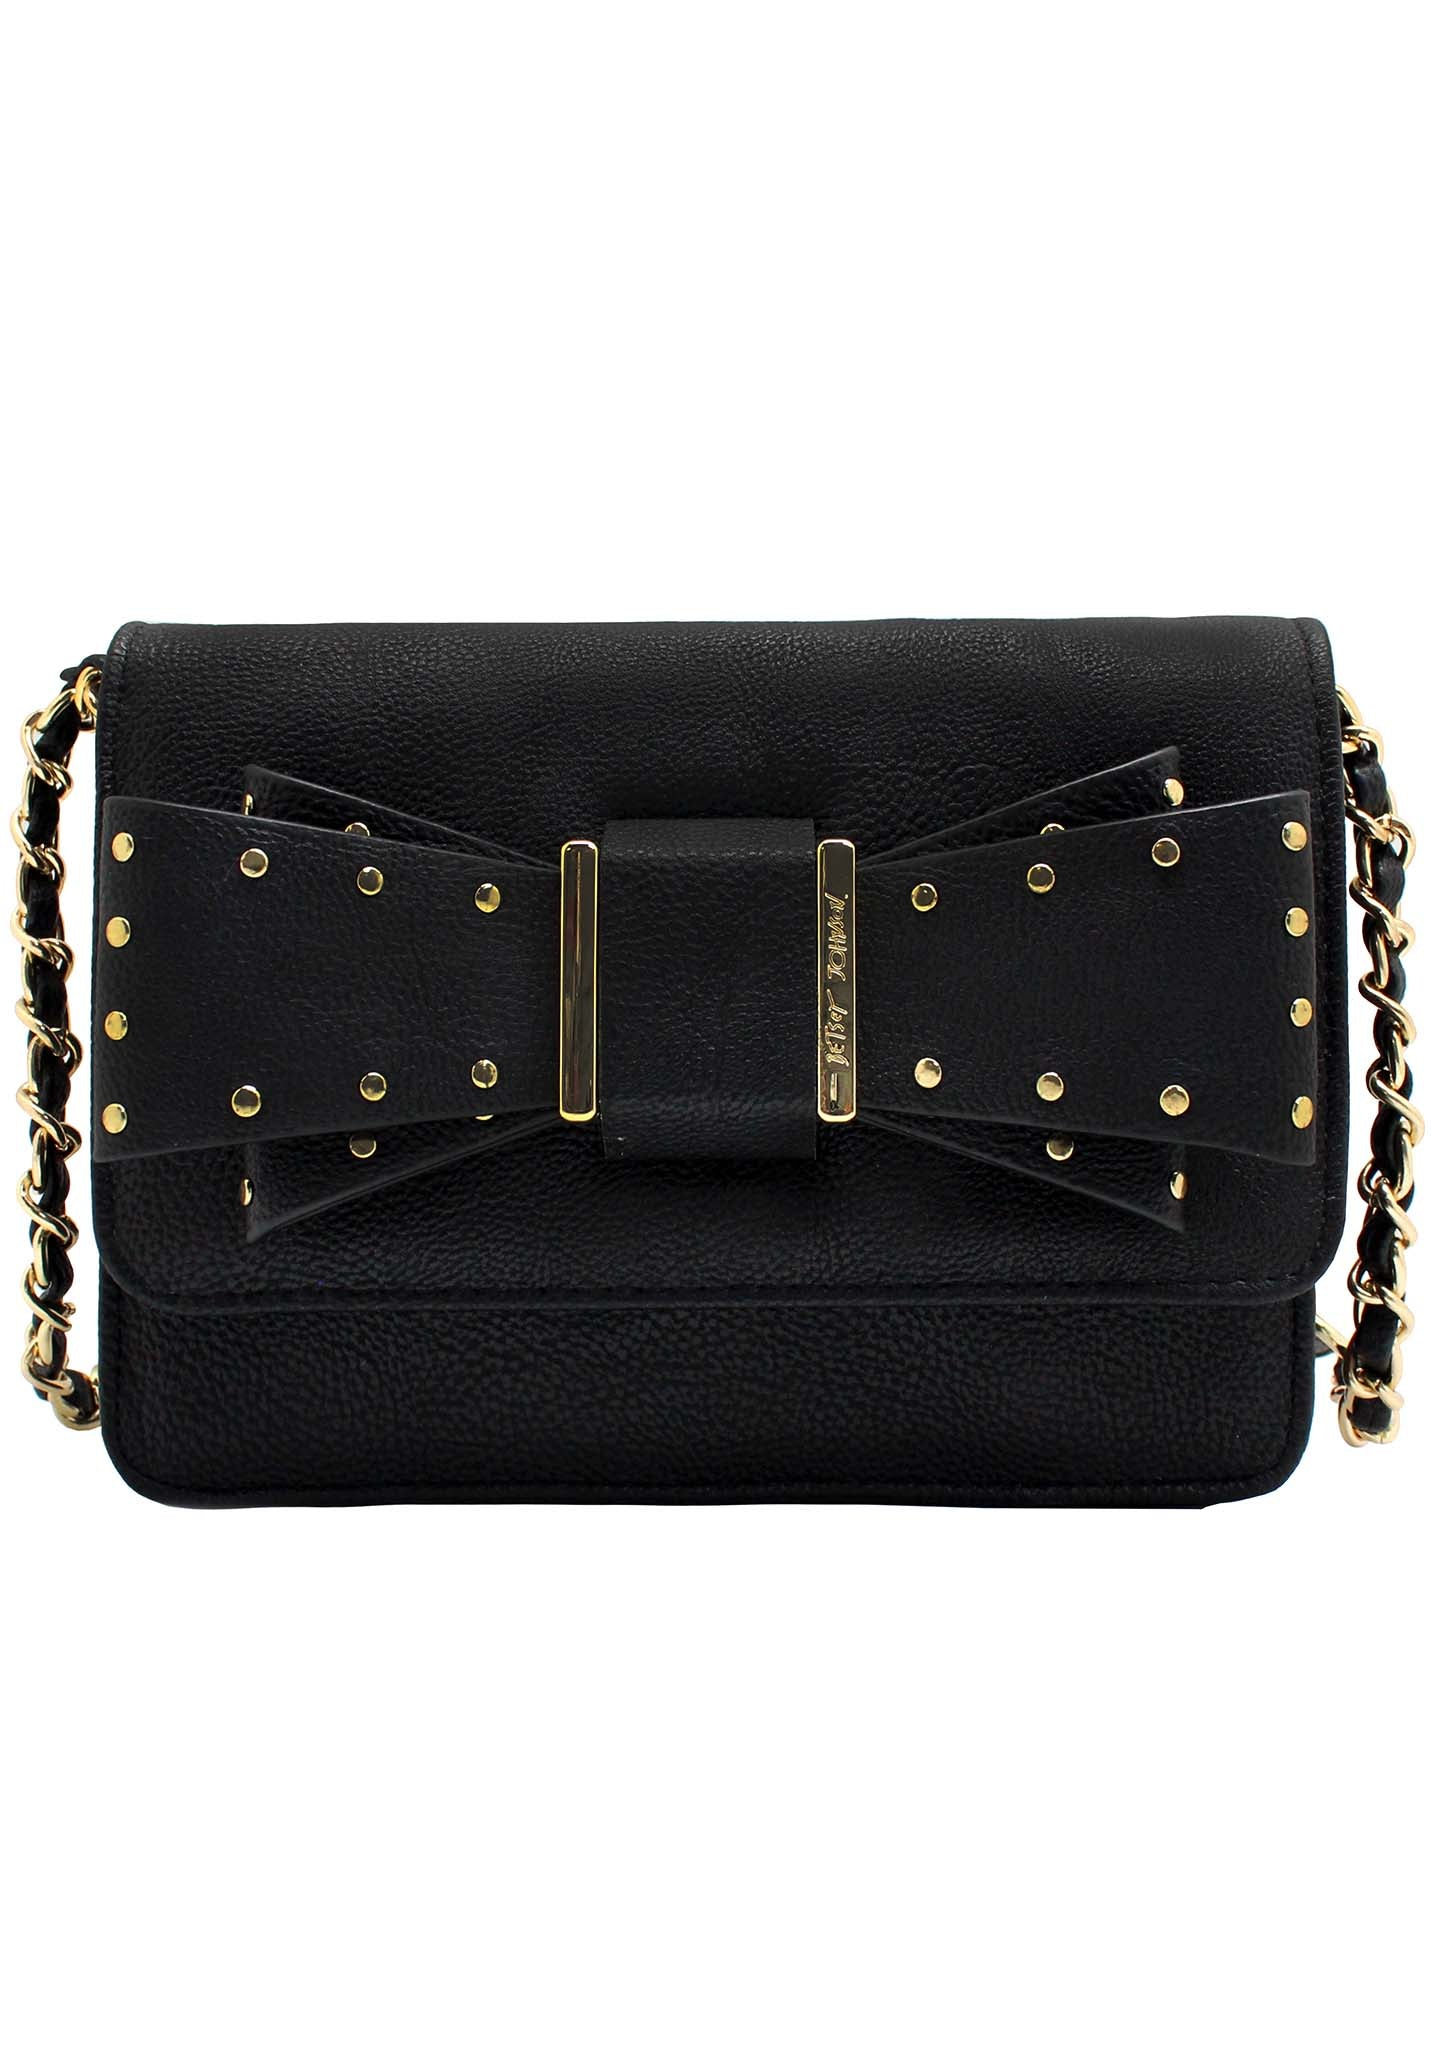 Studded Bow Crossbody Bag in Black